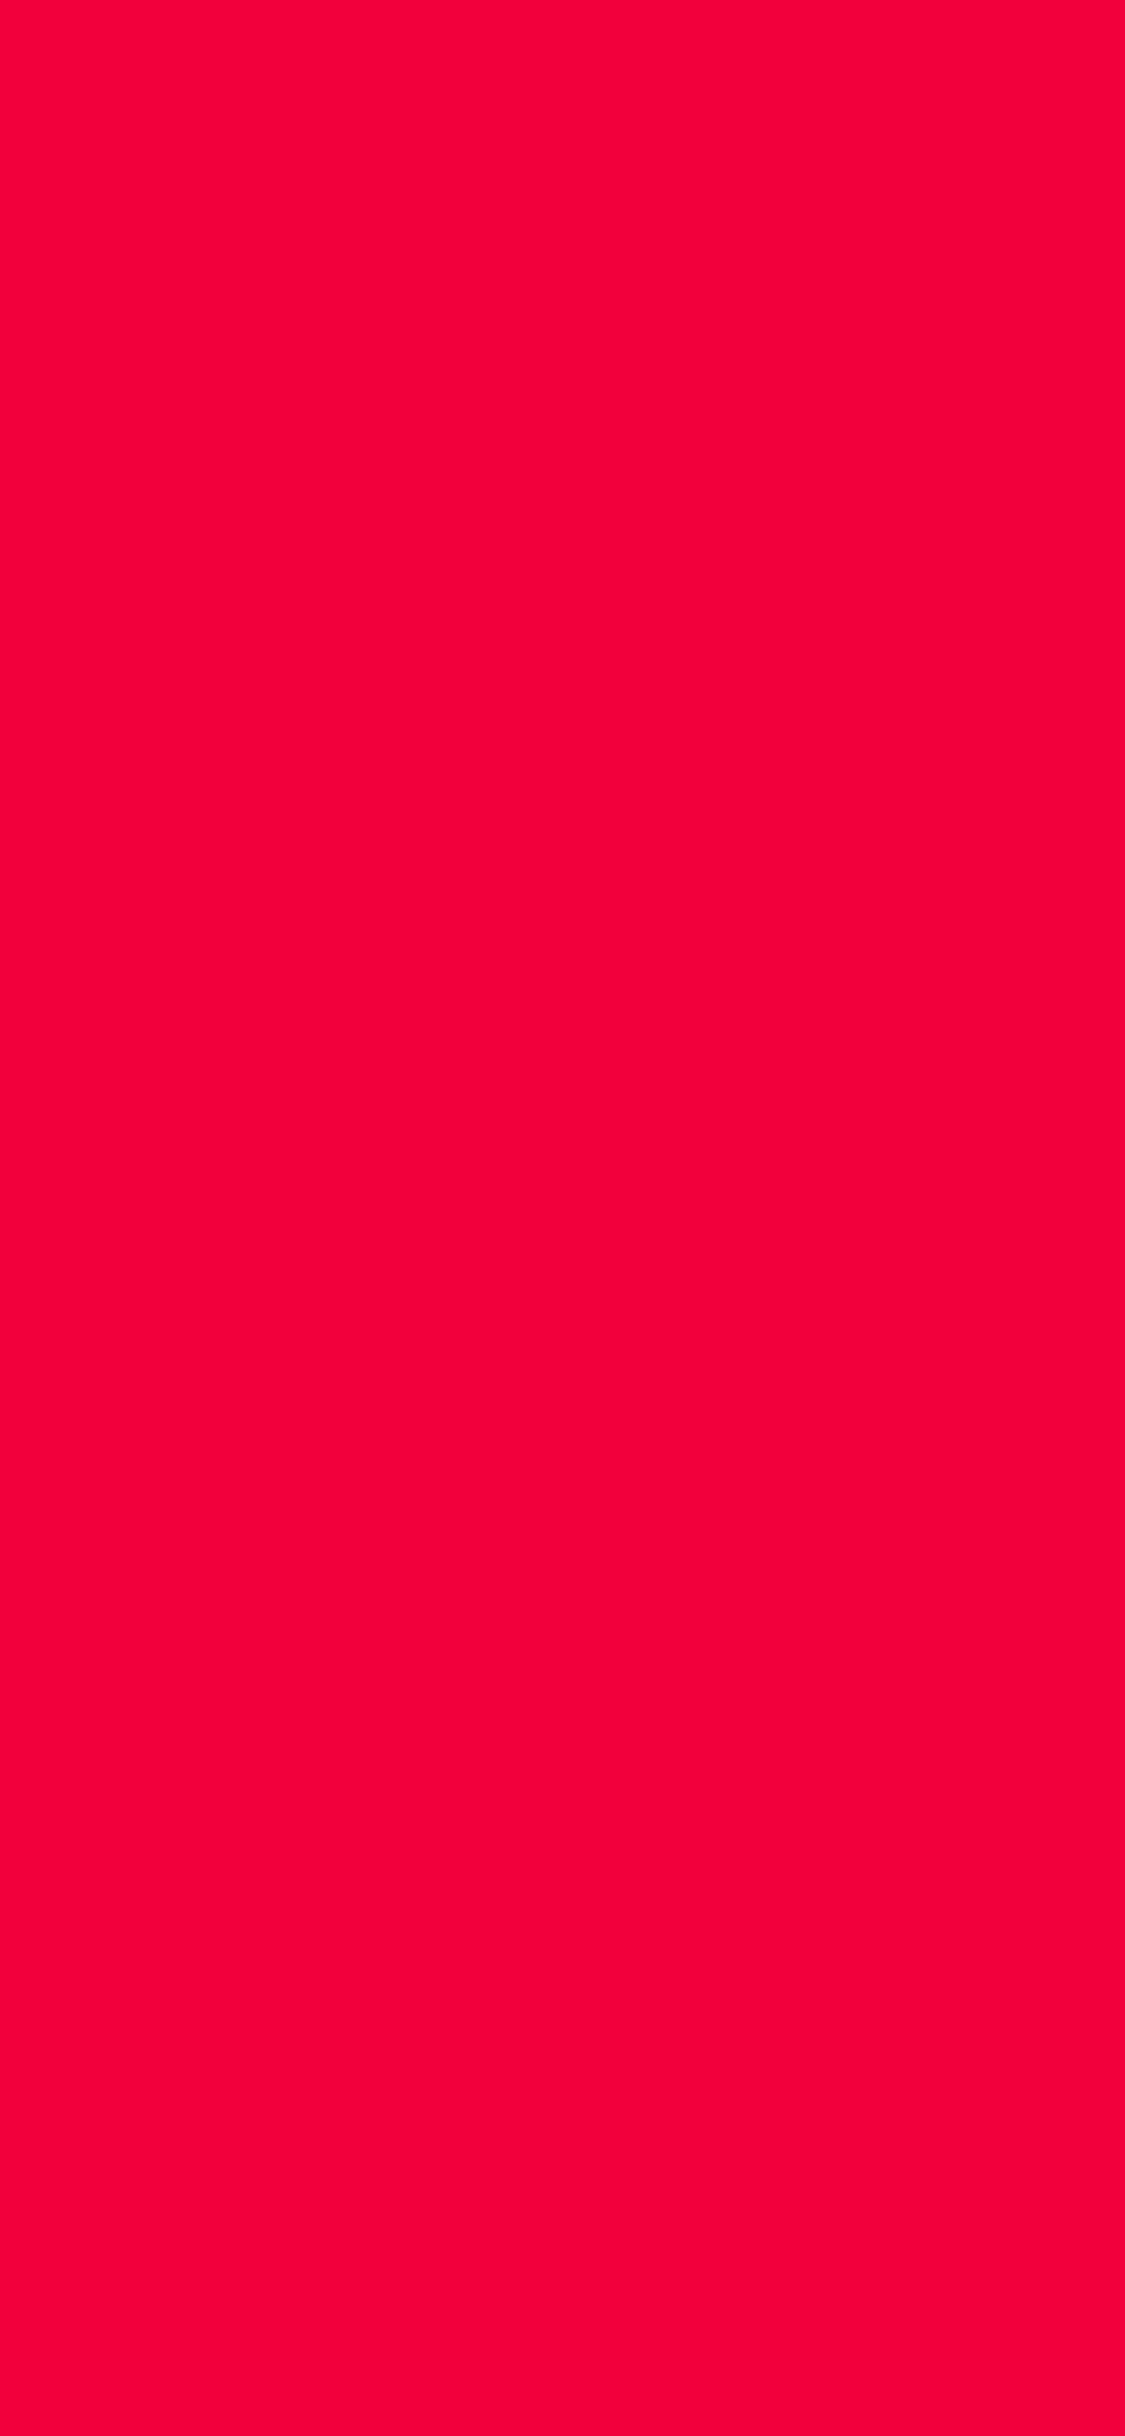 1125x2436 Red Munsell Solid Color Background